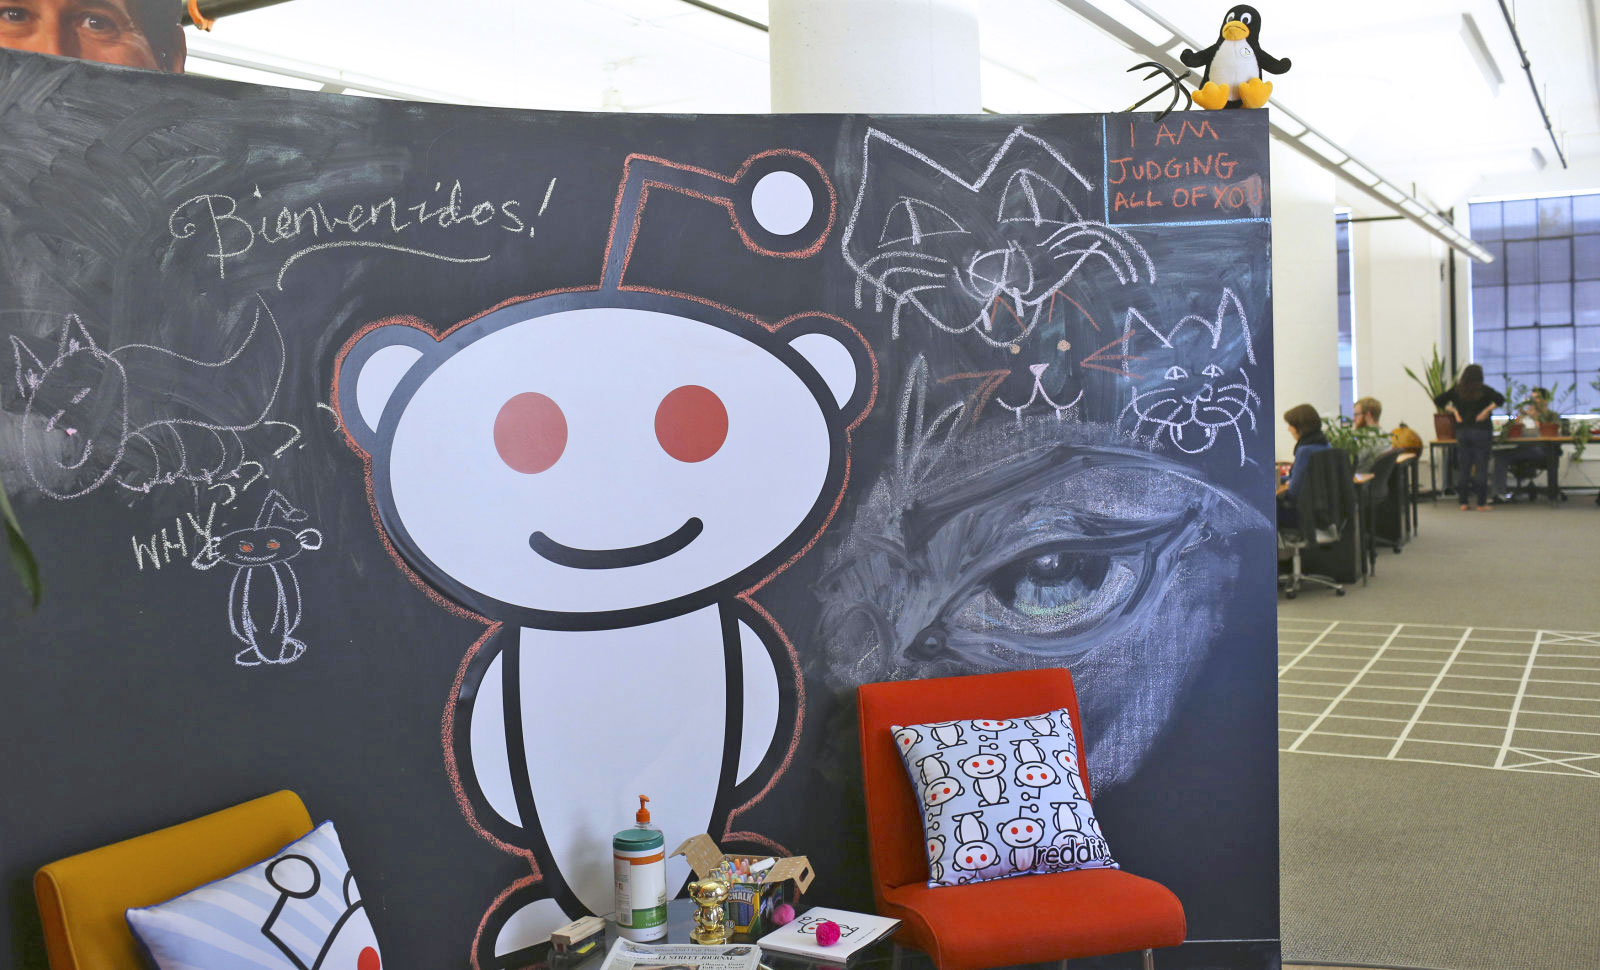 Reddit CEO apologizes for editing users' comments